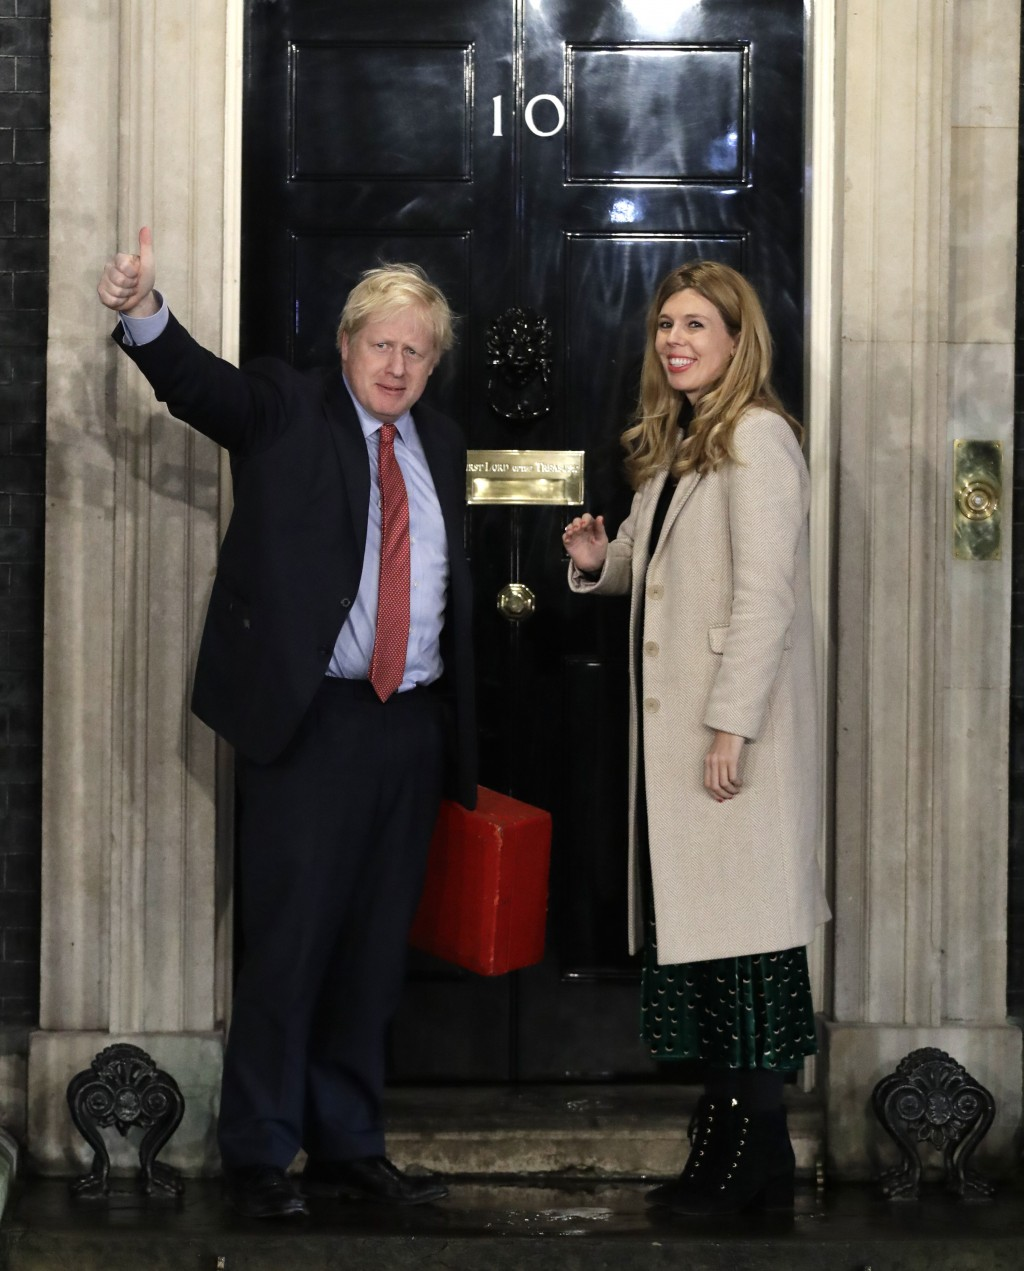 FILE - In this file photo dated Friday, Dec. 13, 2019, Britain's Prime Minister Boris Johnson stands with his partner Carrie Symonds, on the steps of ...